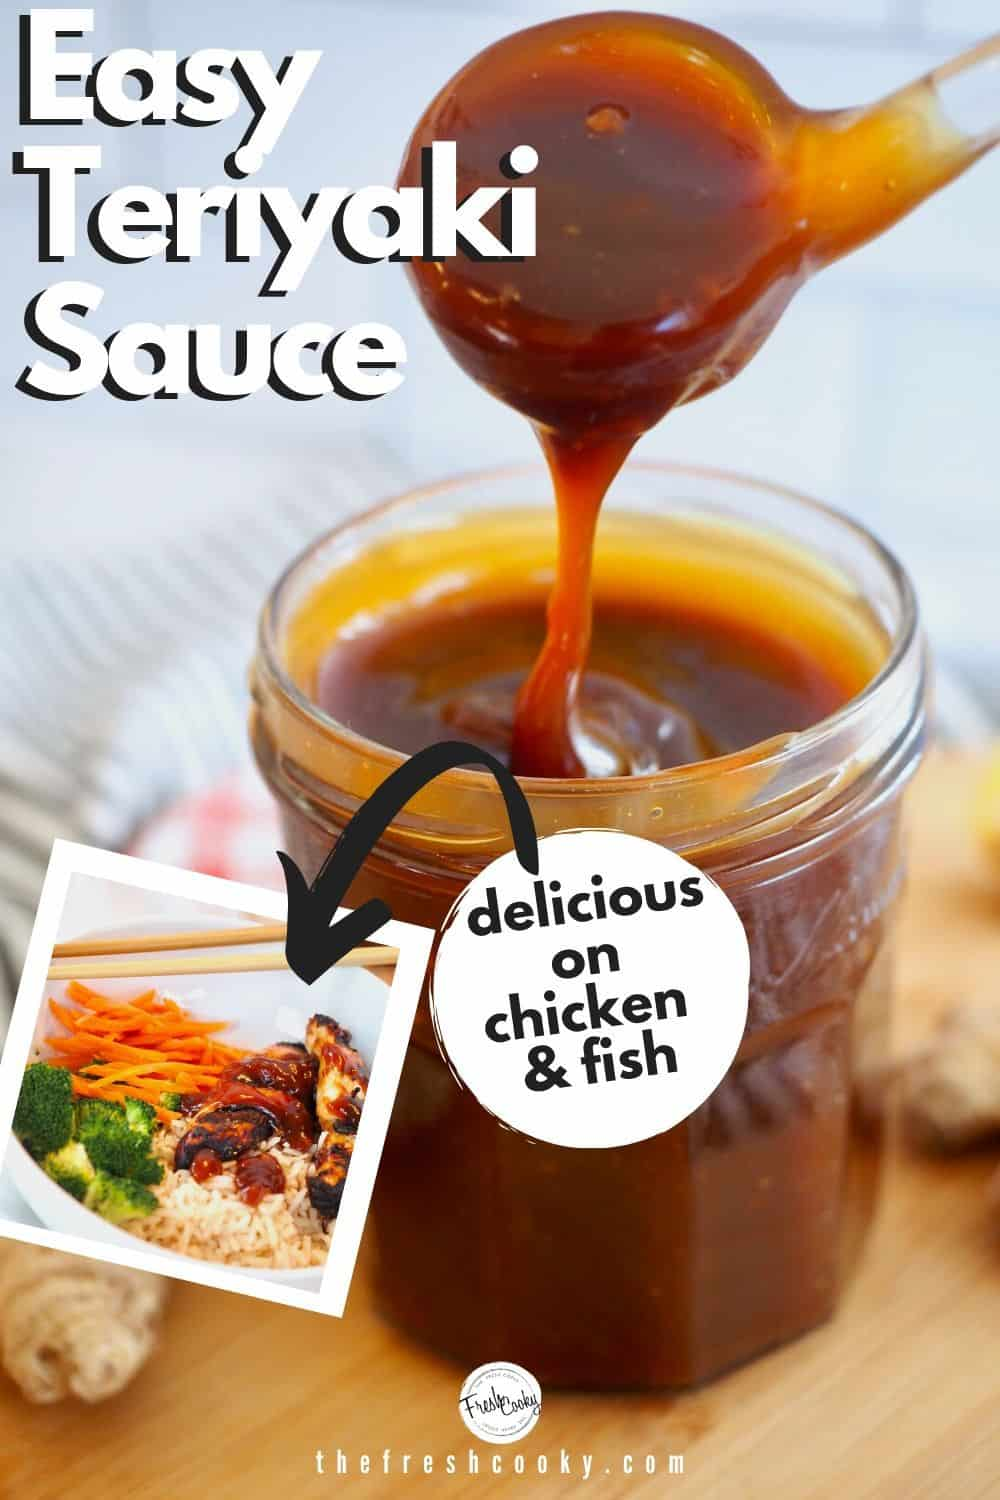 This easy Homemade Teriyaki Sauce and marinade made with just a few simple ingredients! Pour it over meat, chicken, fish and salmon, vegetables, tofu, stir fry, and more! Use as a marinade or a simple sauce. With a few substitutions it is both vegan and gluten free. Get the details and the recipe via @thefreshcooky | #teriyaki #vegan #bestrecipes #easyrecipes via @thefreshcooky